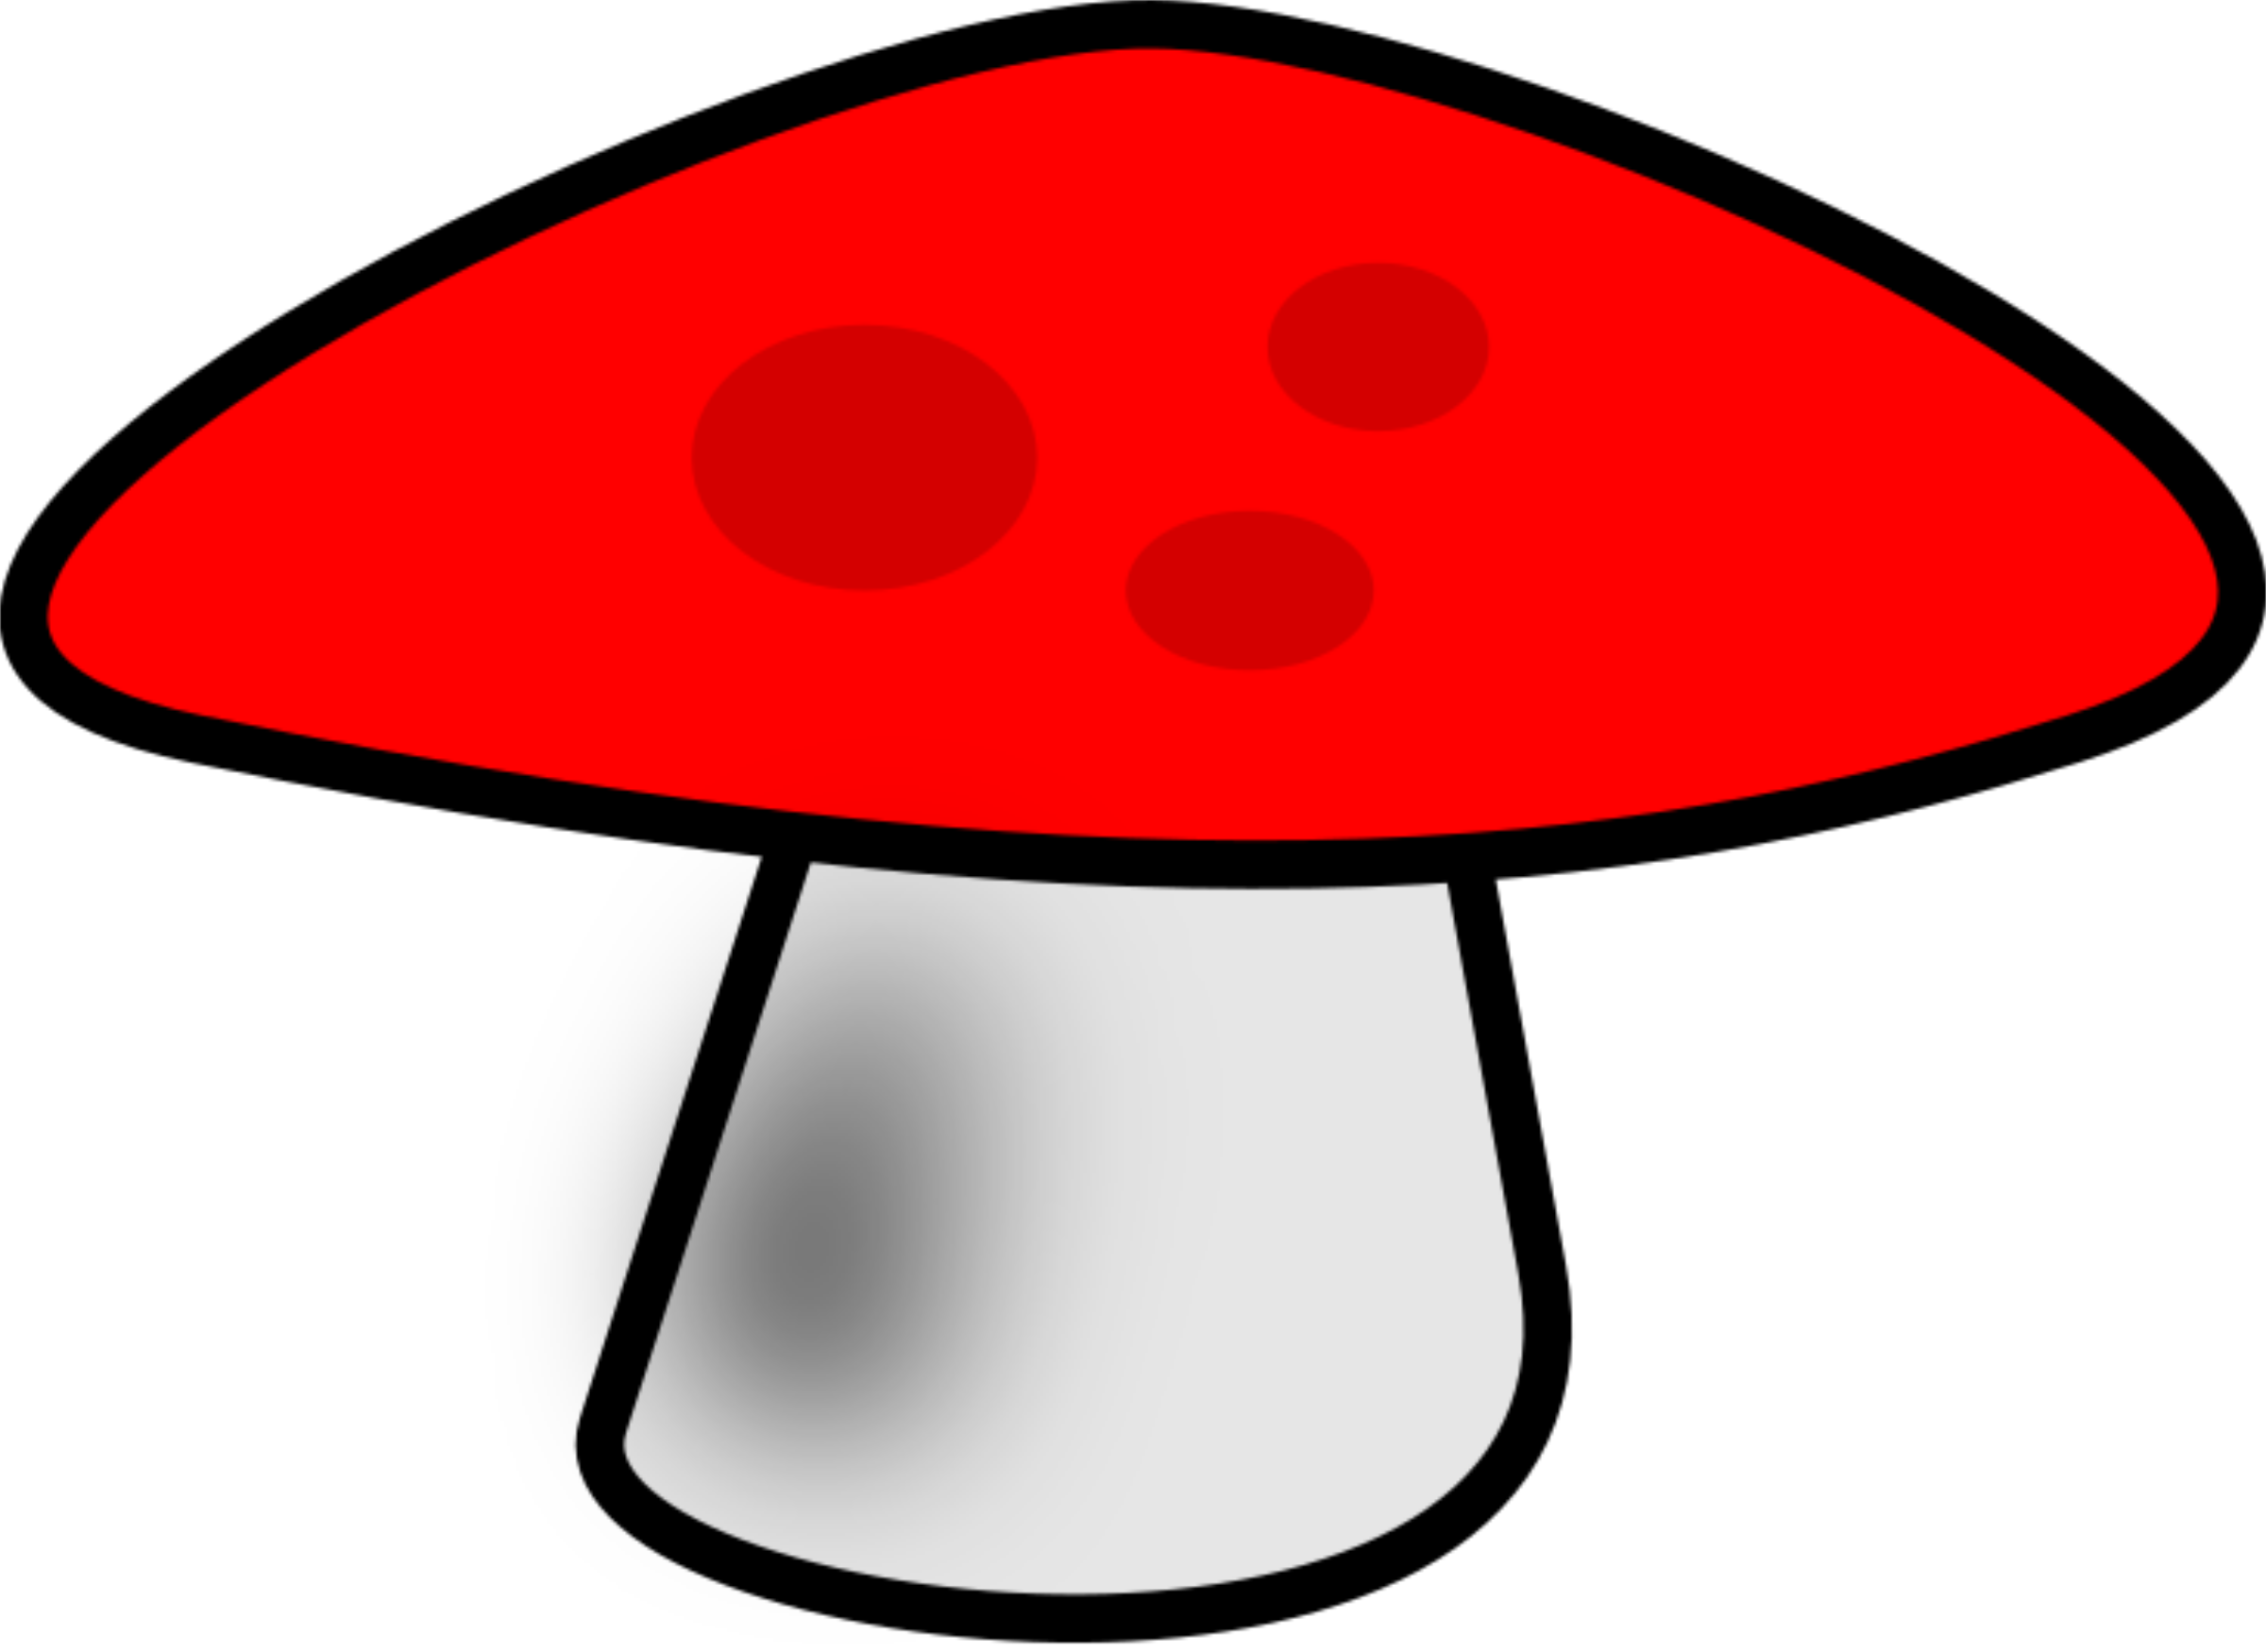 Red mushroom. Icons png free and